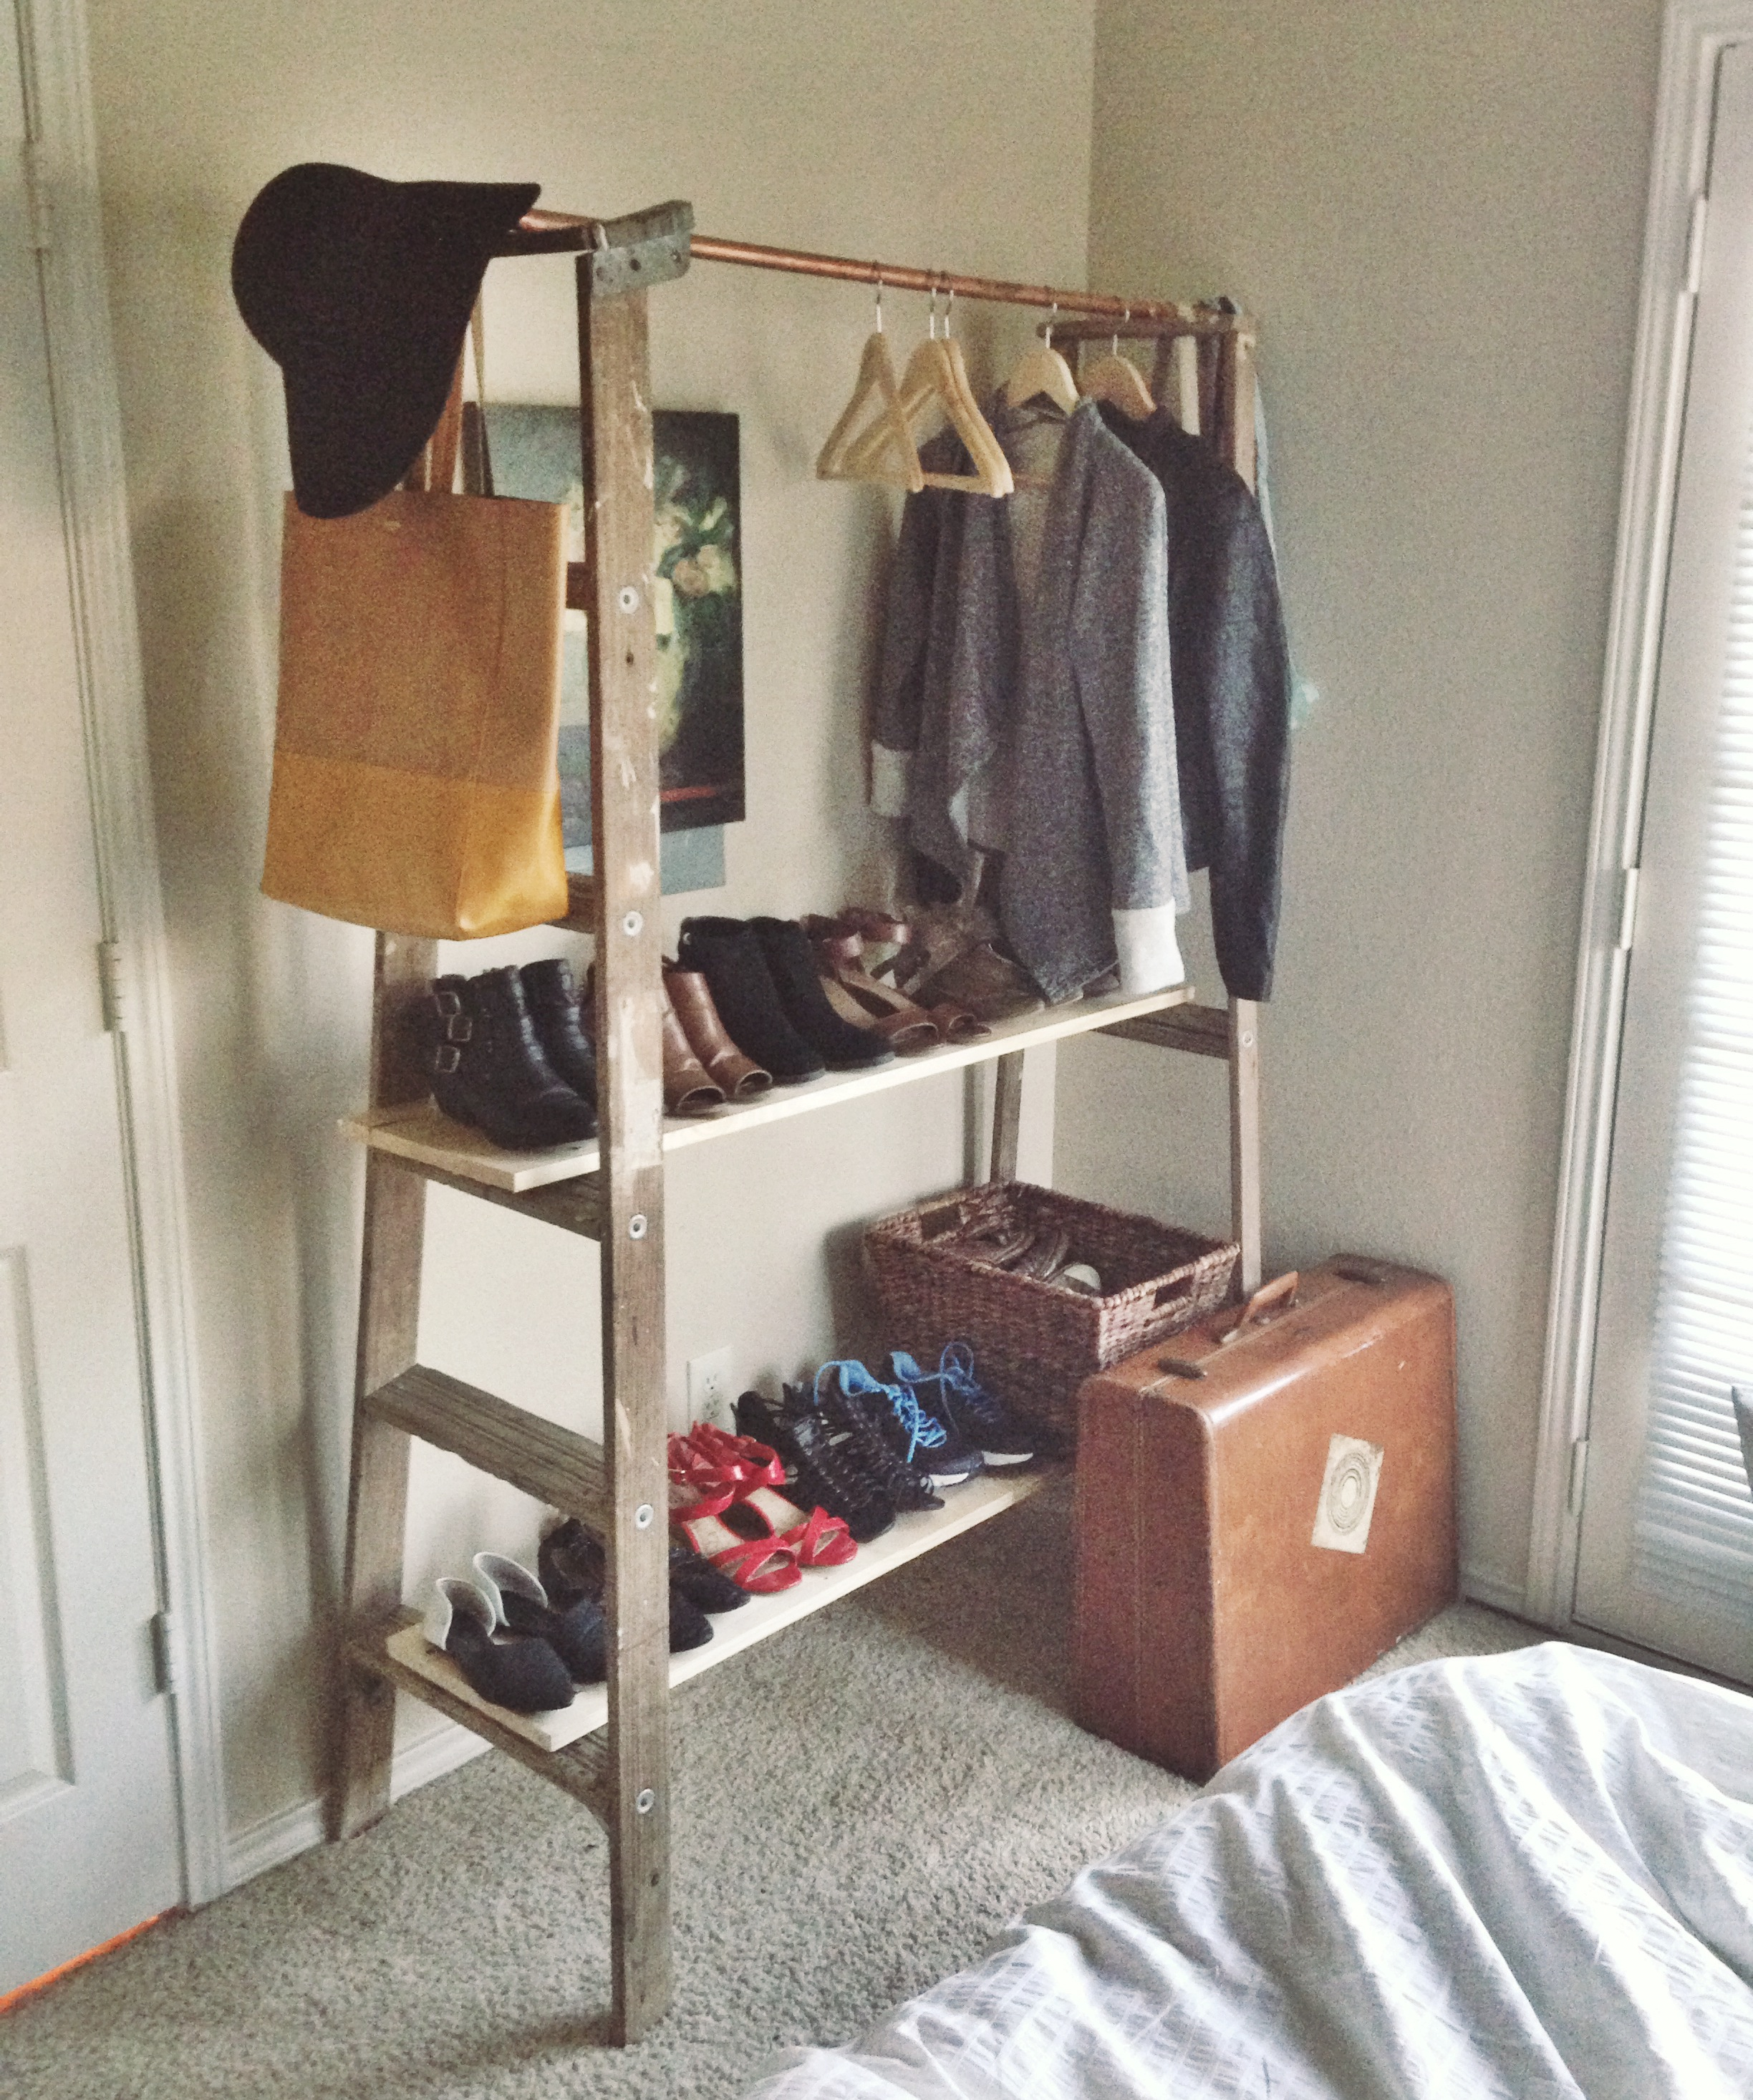 Thursday, in A Brief History of My Experience Building A Minimal Wardrobe:  Part 1, I shared my early experiences with minimalism, owning possessions,  ...